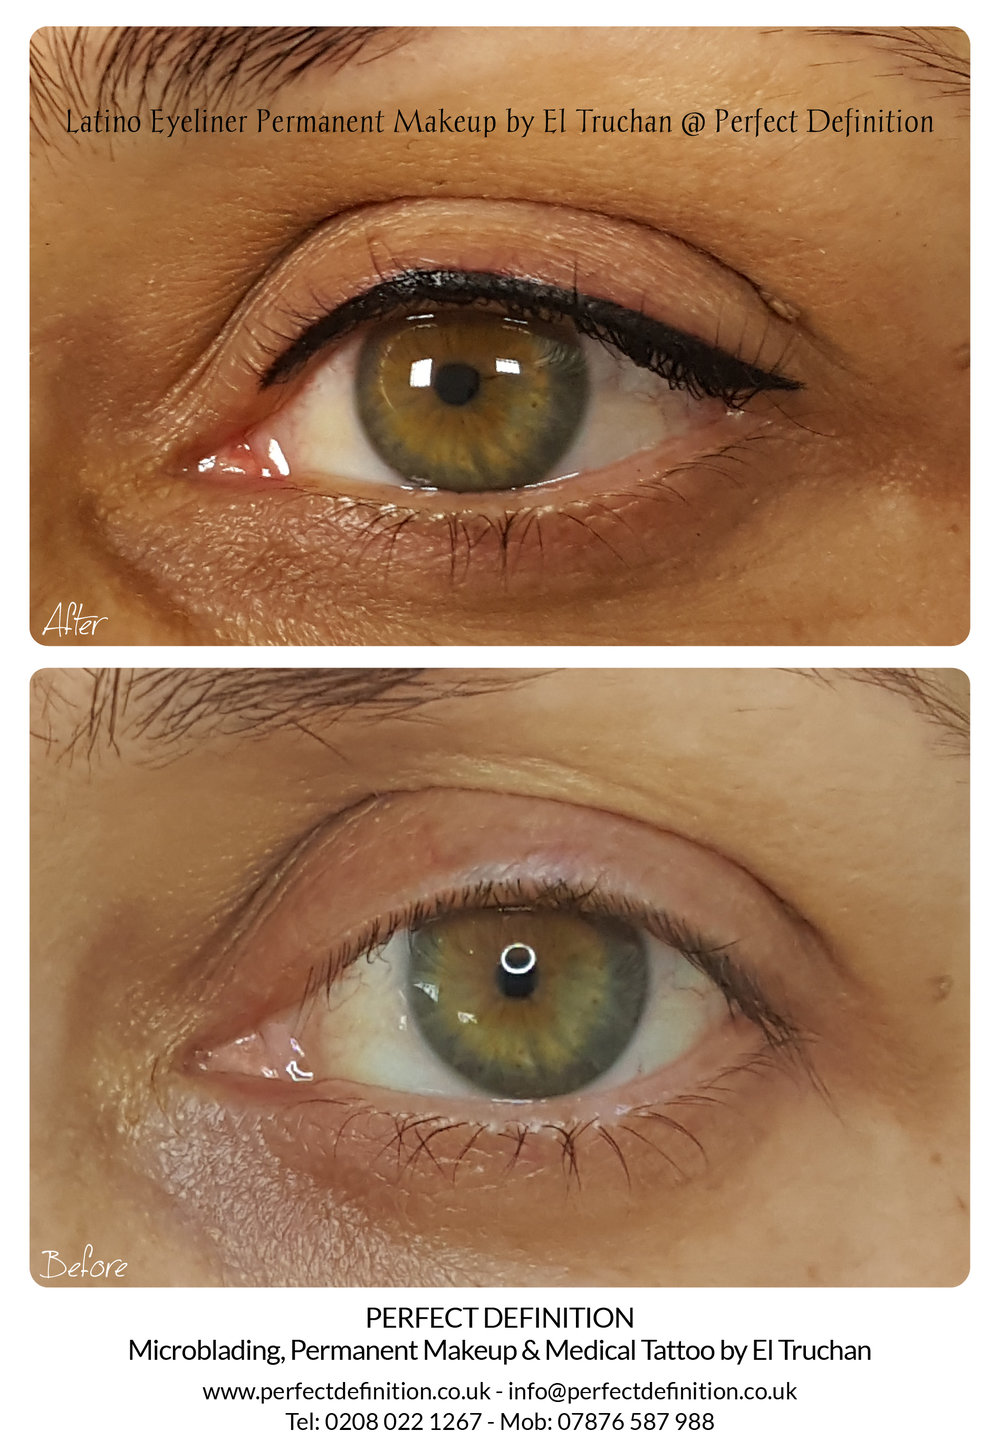 Latino Eyeliner Permanent Makeup by El Truchan @ Perfect Definition _1591.jpg